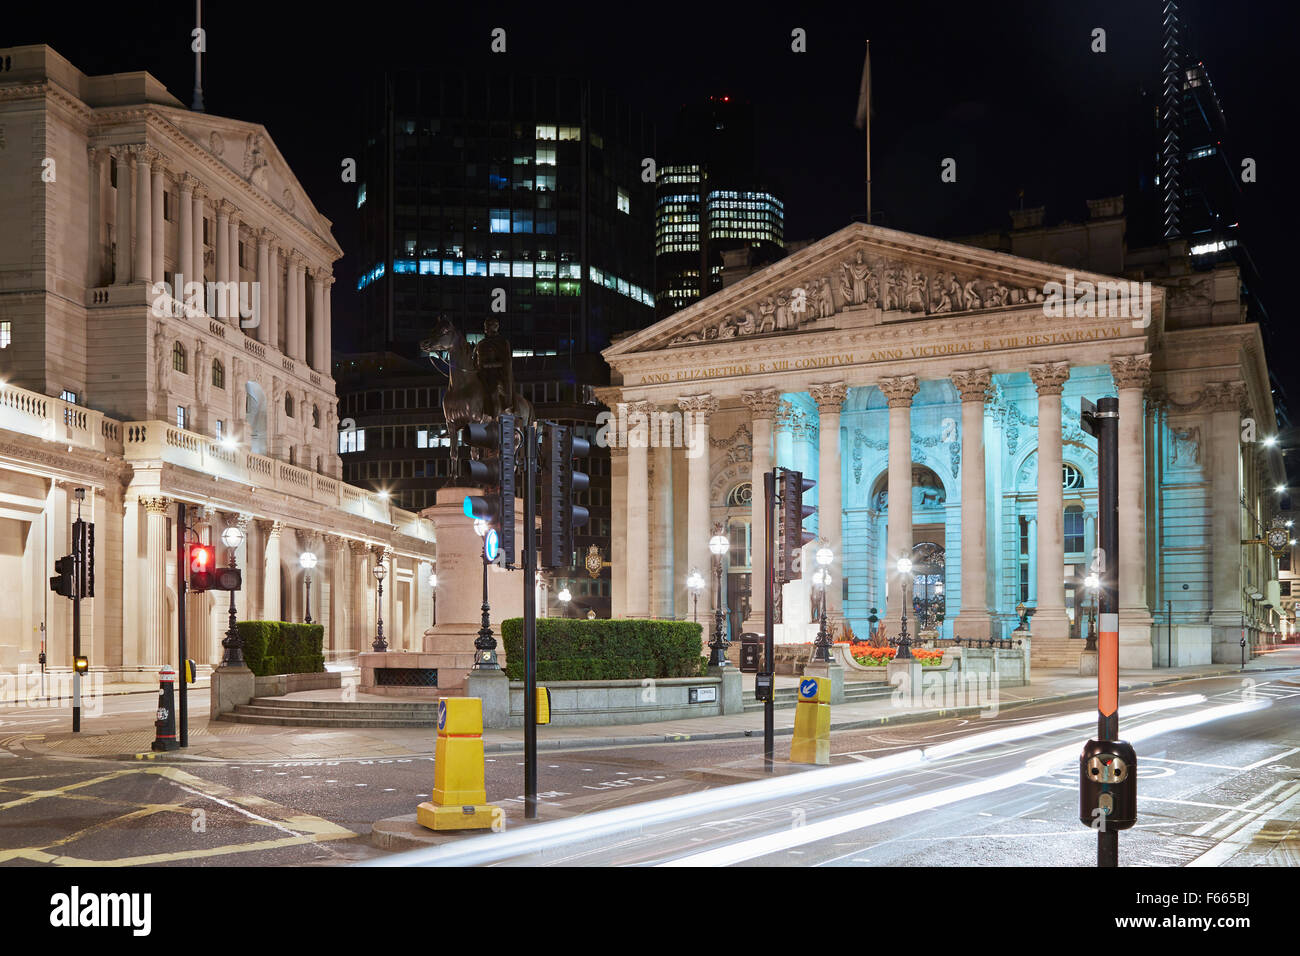 London Royal Exchange, luxury shopping center and Bank of England at night - Stock Image